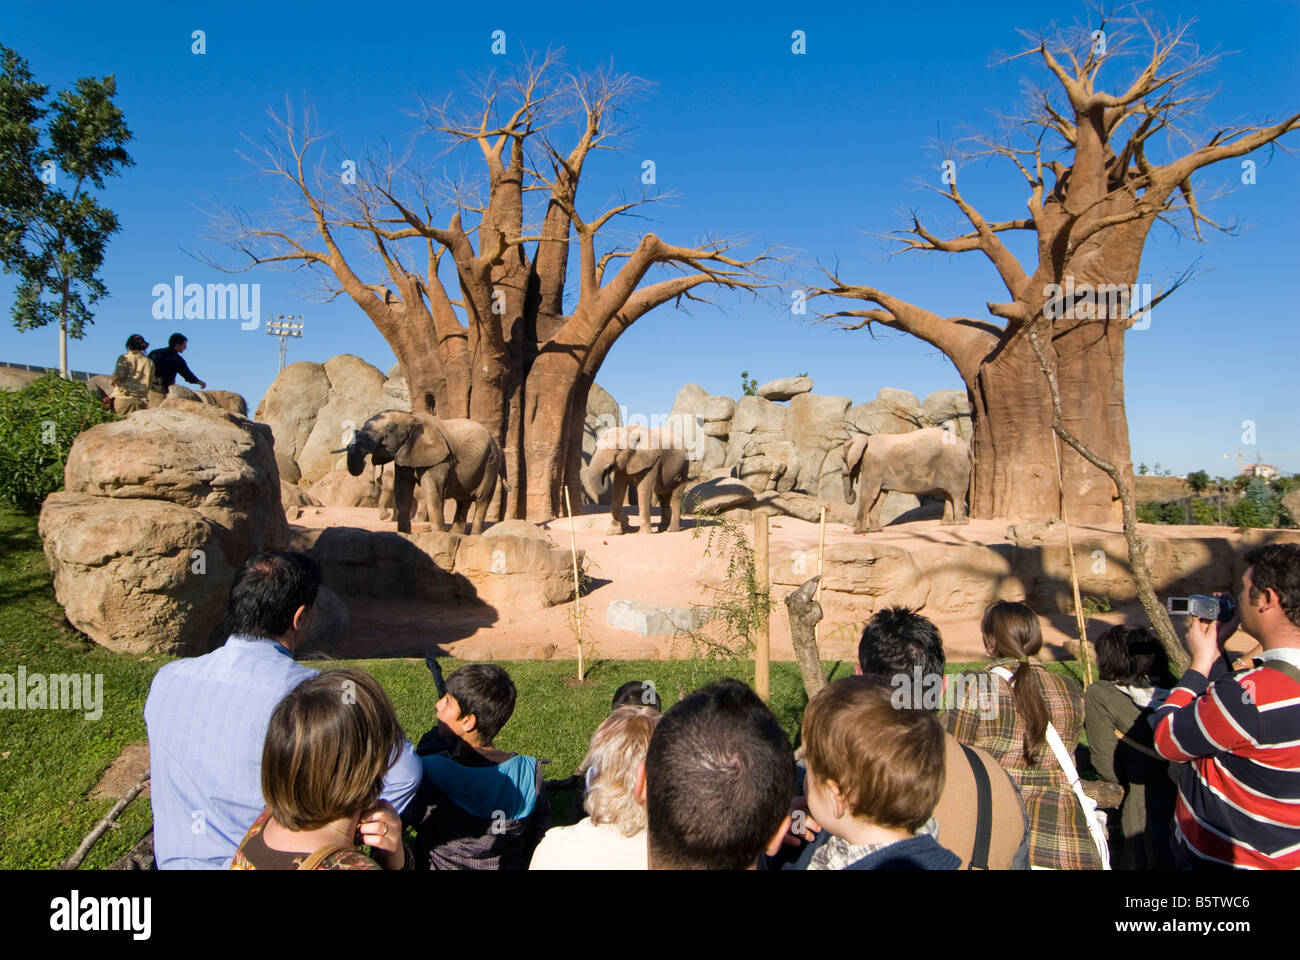 People looking at elephants in enclosure inside the Biopark zoo which opened in the city of Valencia in 2008 - Stock Image